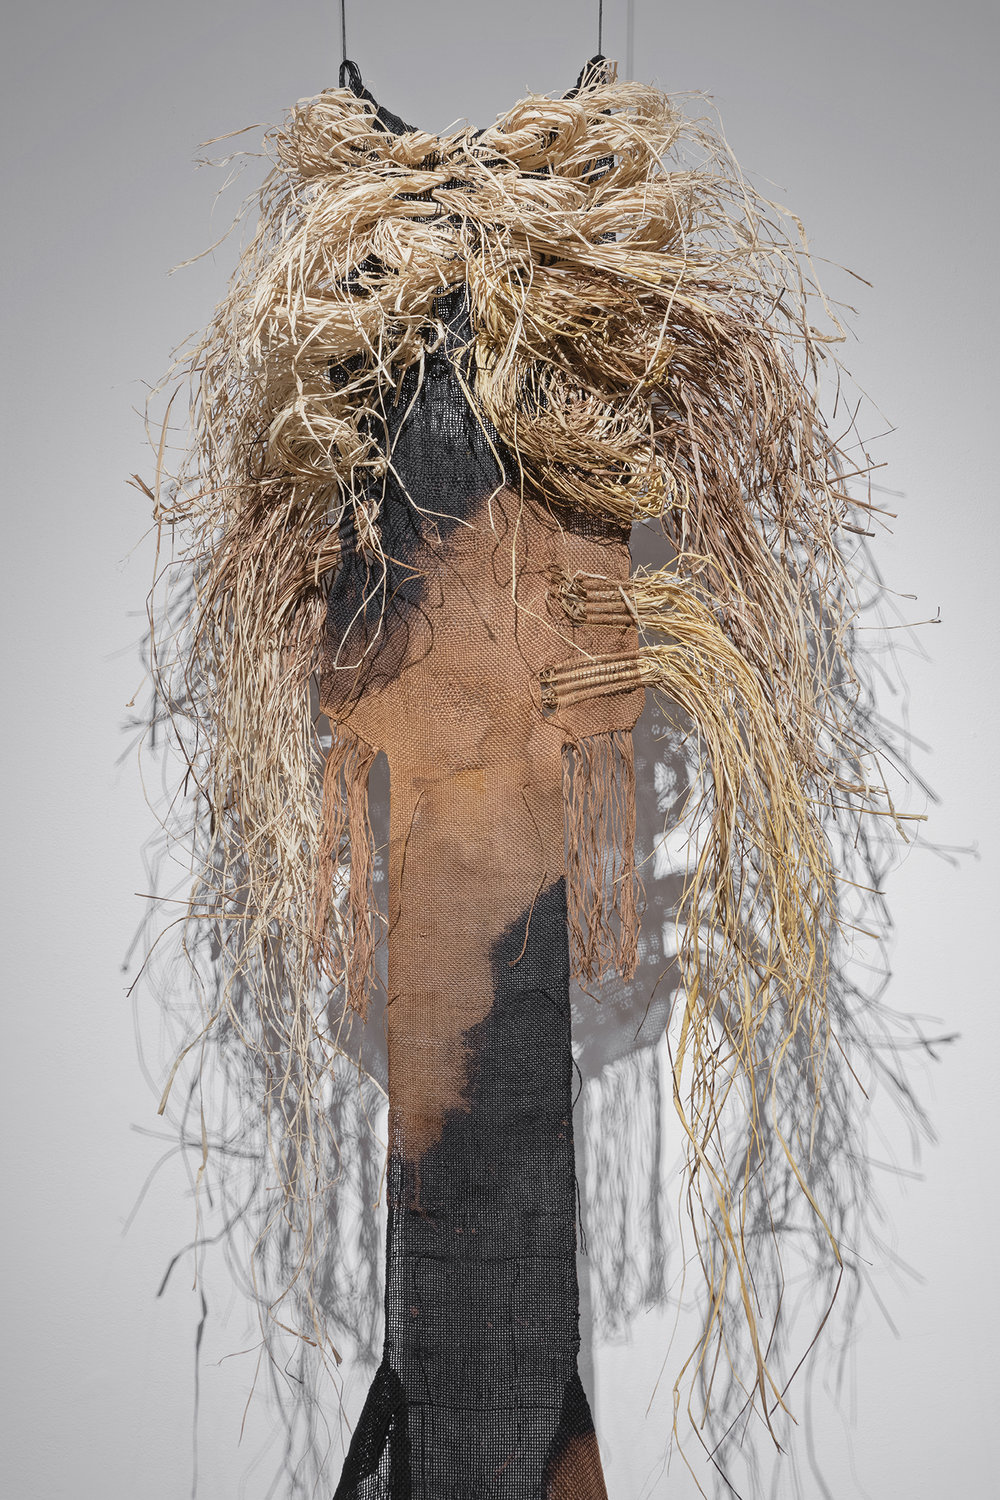 Mary Grisey, Numina of Akasha I – V , 2015, Handwoven & hand-dyed linen and raffia, bleach, rust, XIT-RM Gallery, Art Gallery of Mississauga. Photo by Toni Hafkenscheid.